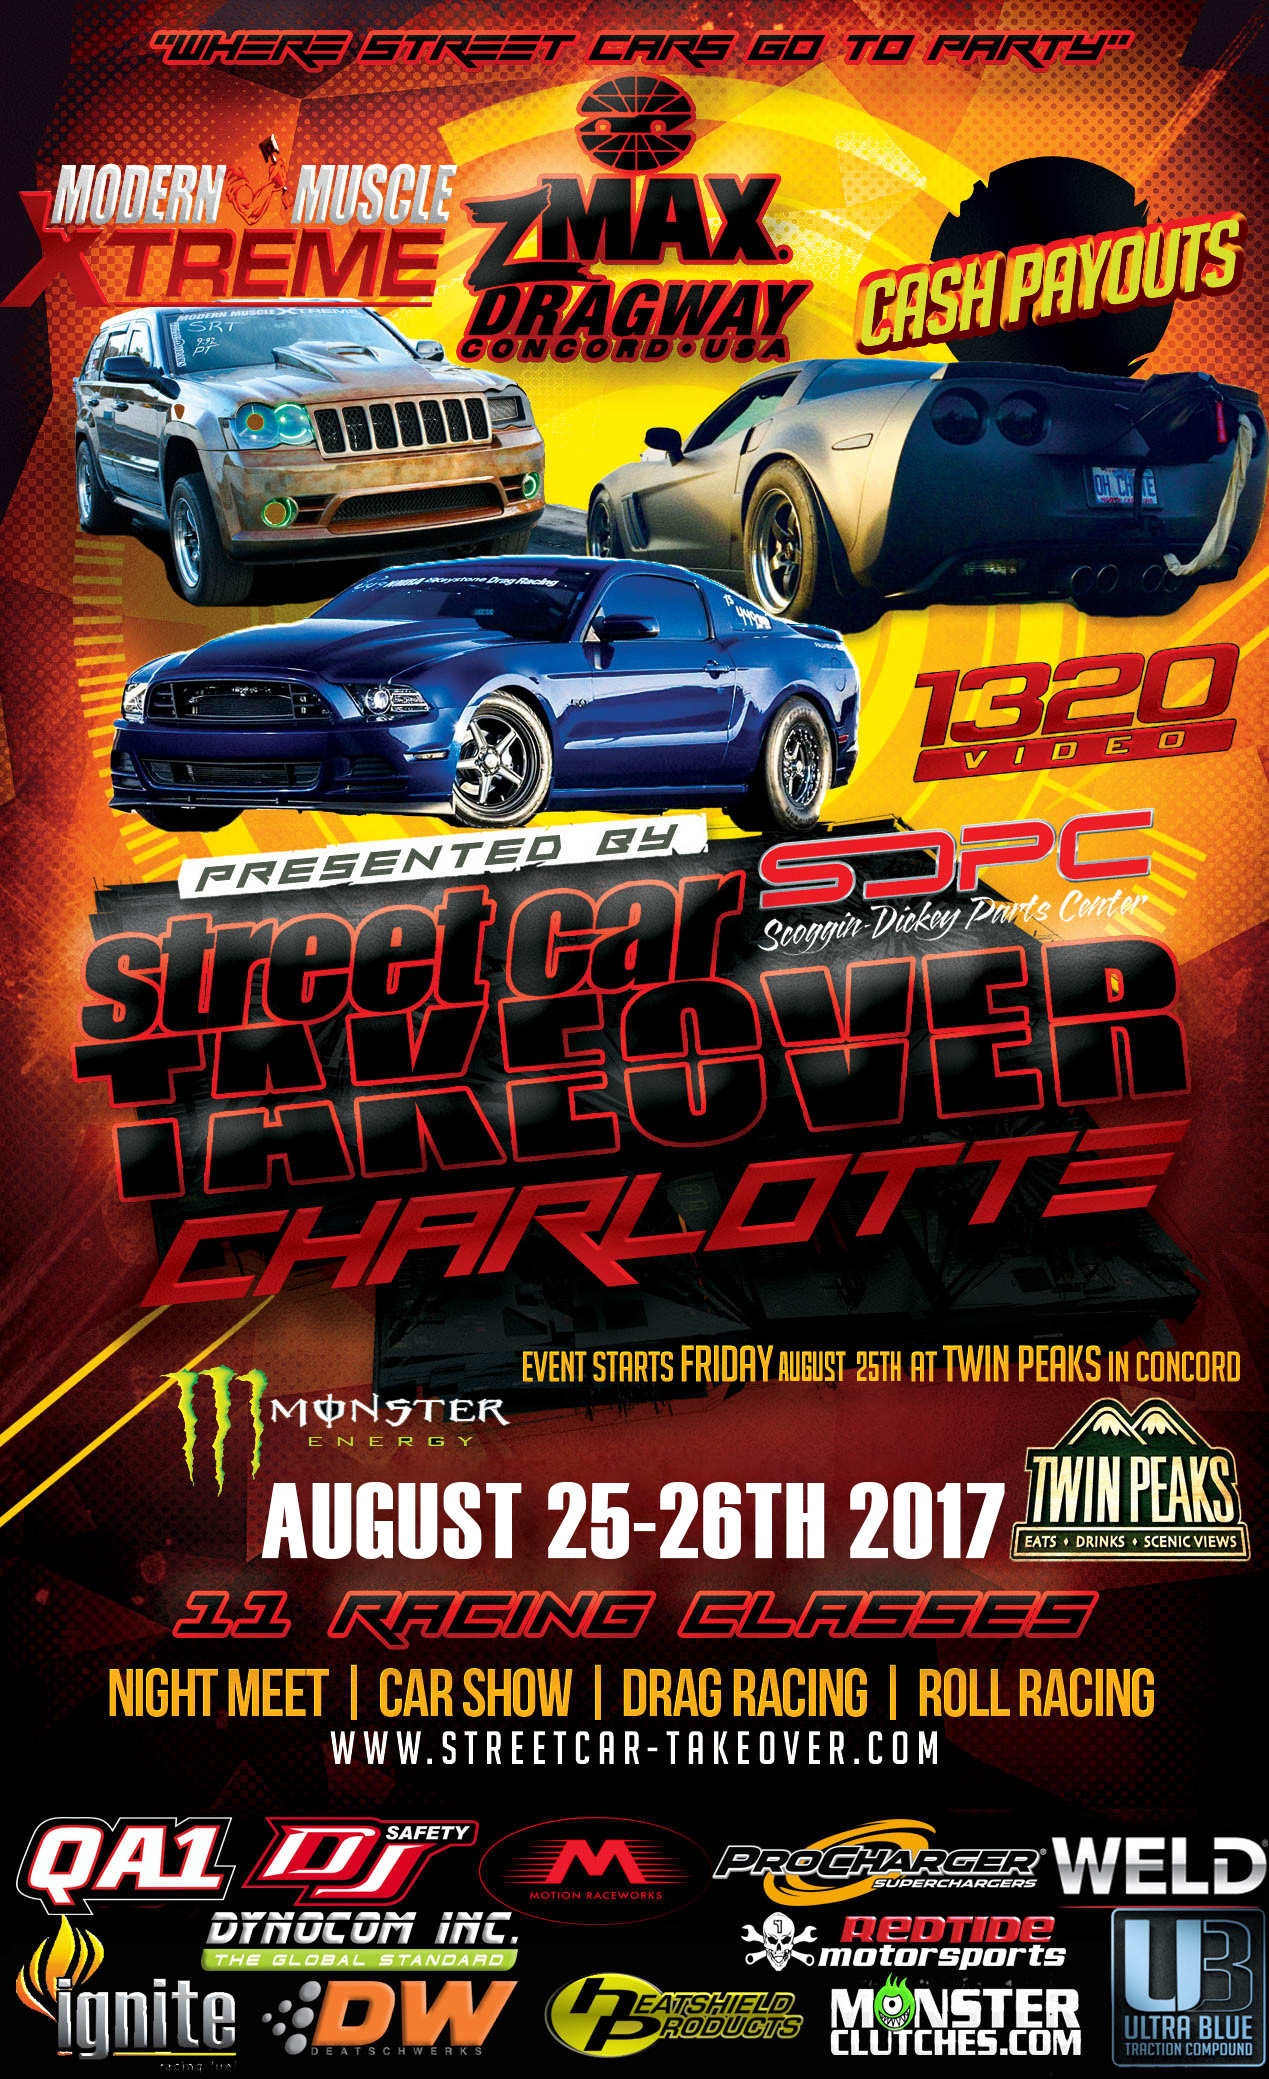 Street Car Takeover - Zmax Dragway, Charlotte, NC on August 25th - 26th!